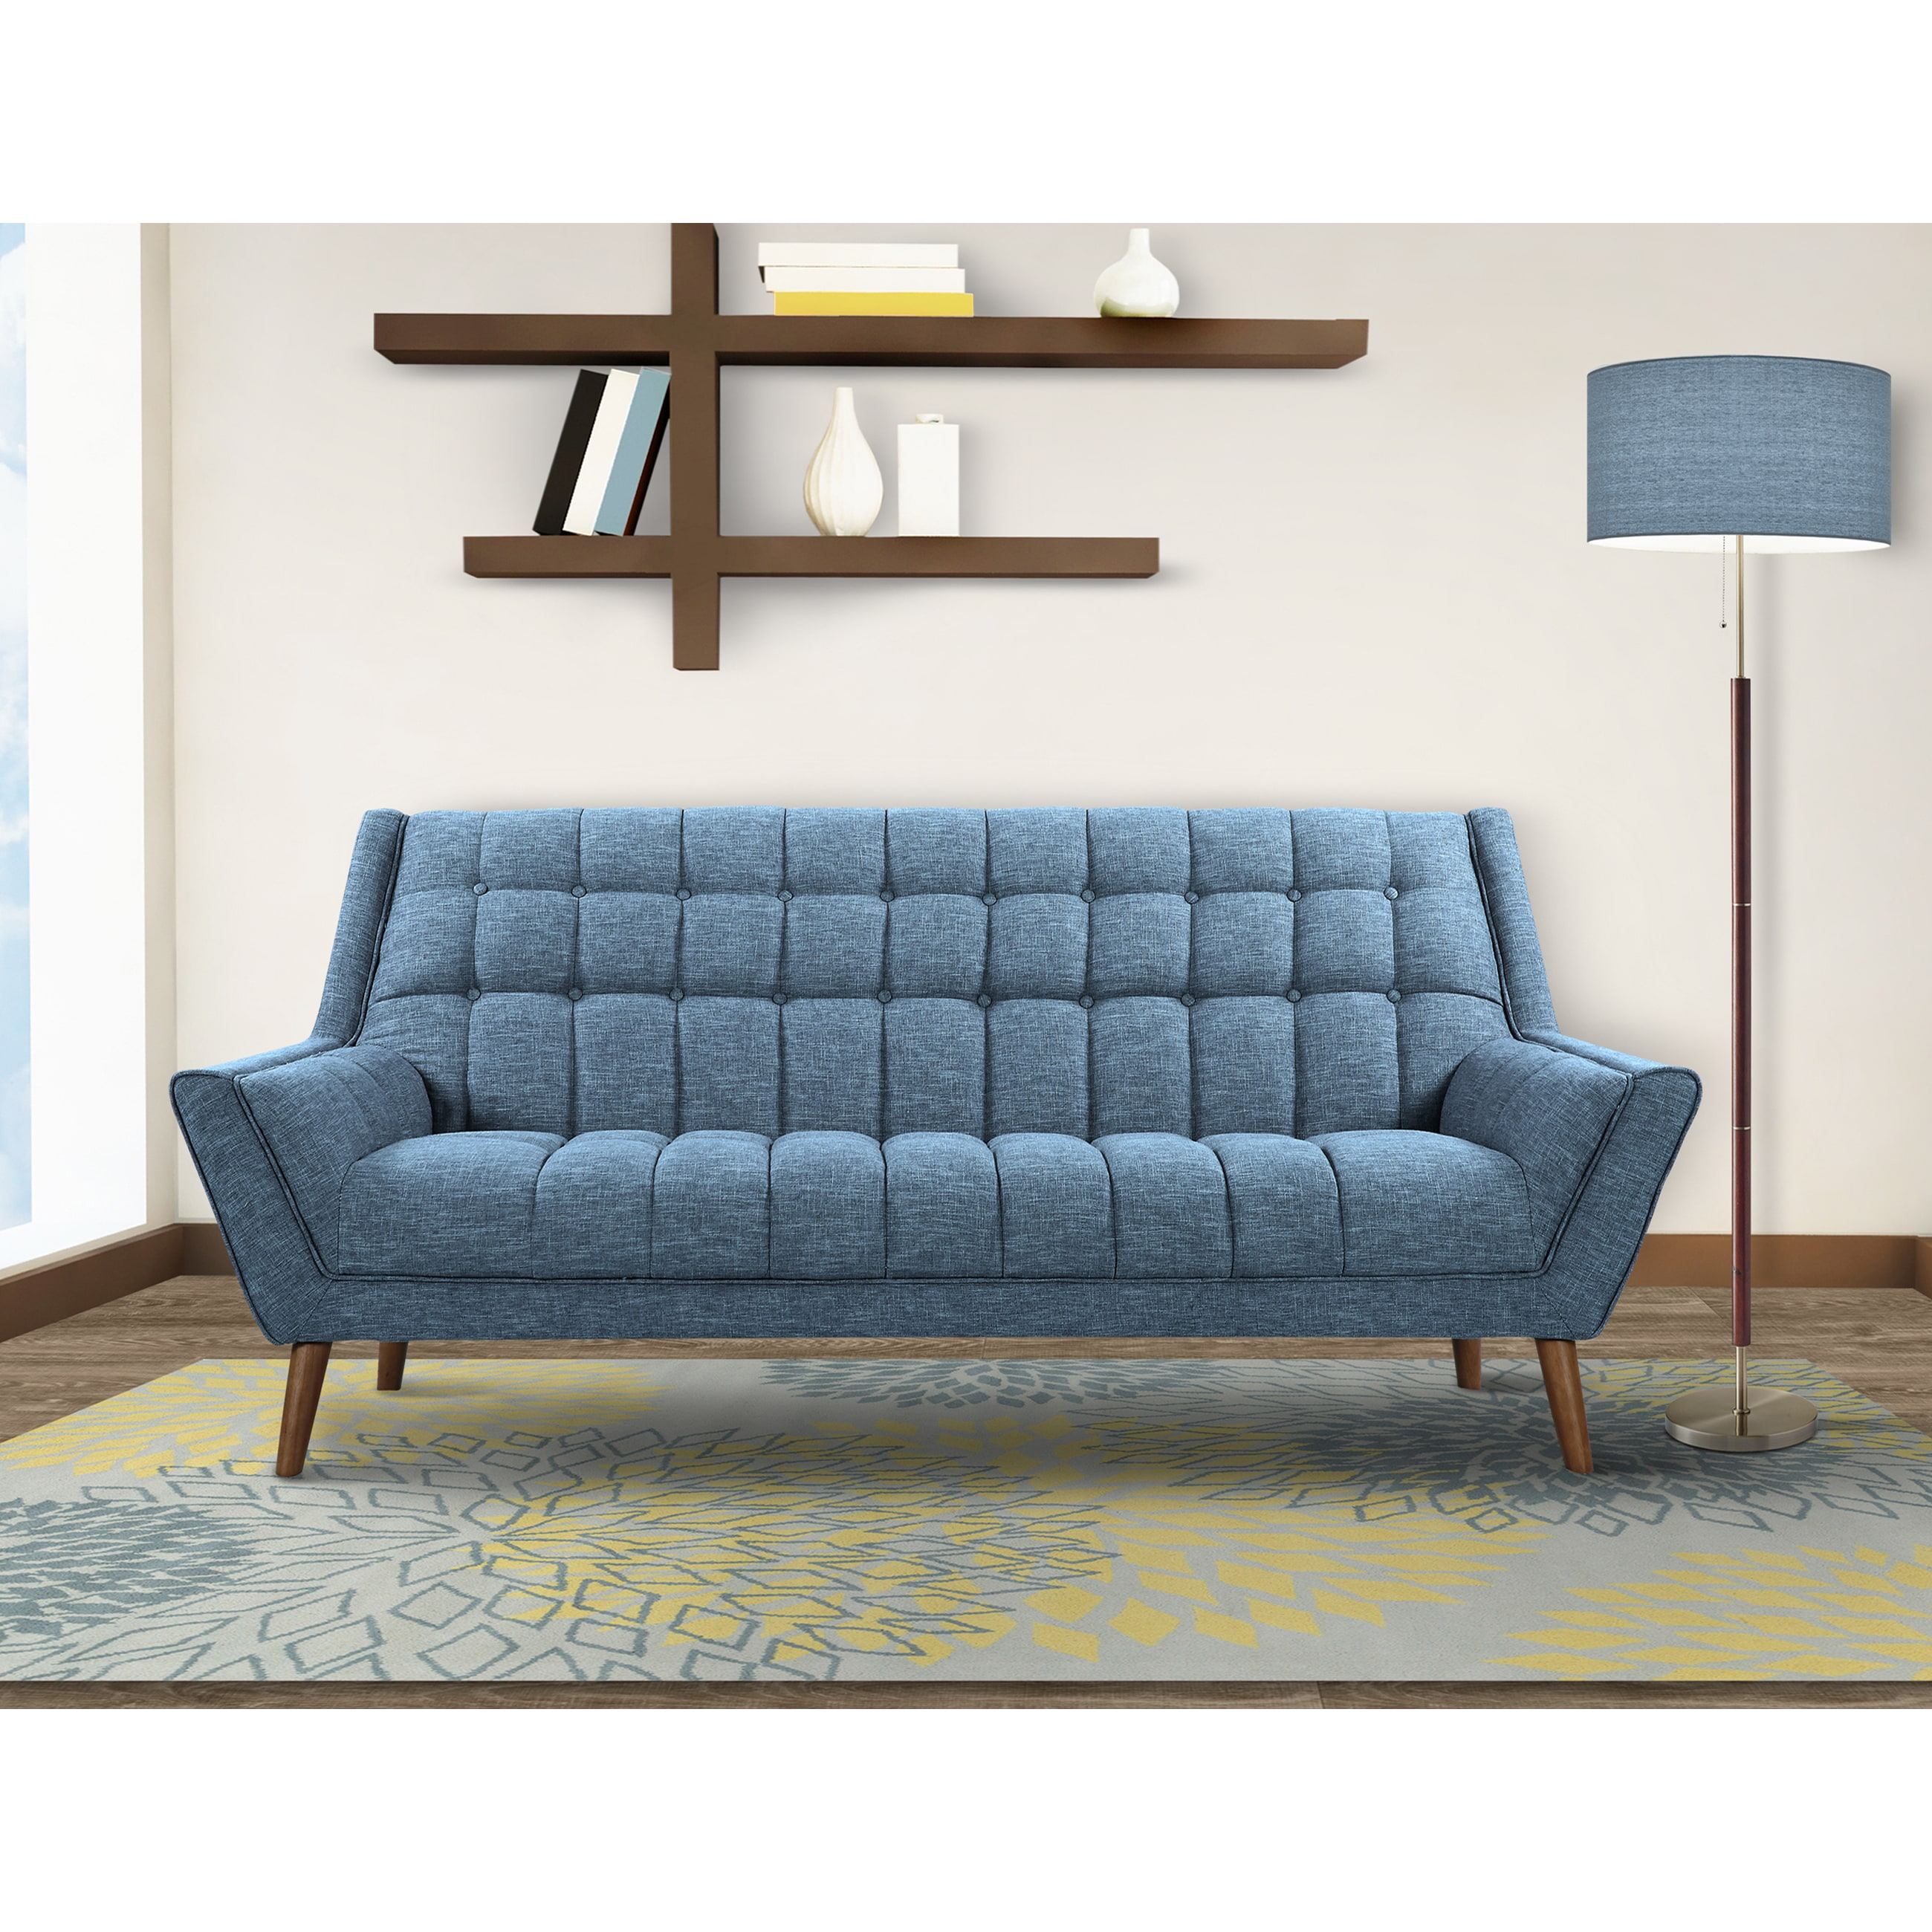 Shop Armen Living Cobra Mid Century Modern Sofa In Dark Gray Or Blue Linen  And Walnut Legs   Free Shipping Today   Overstock.com   13404348